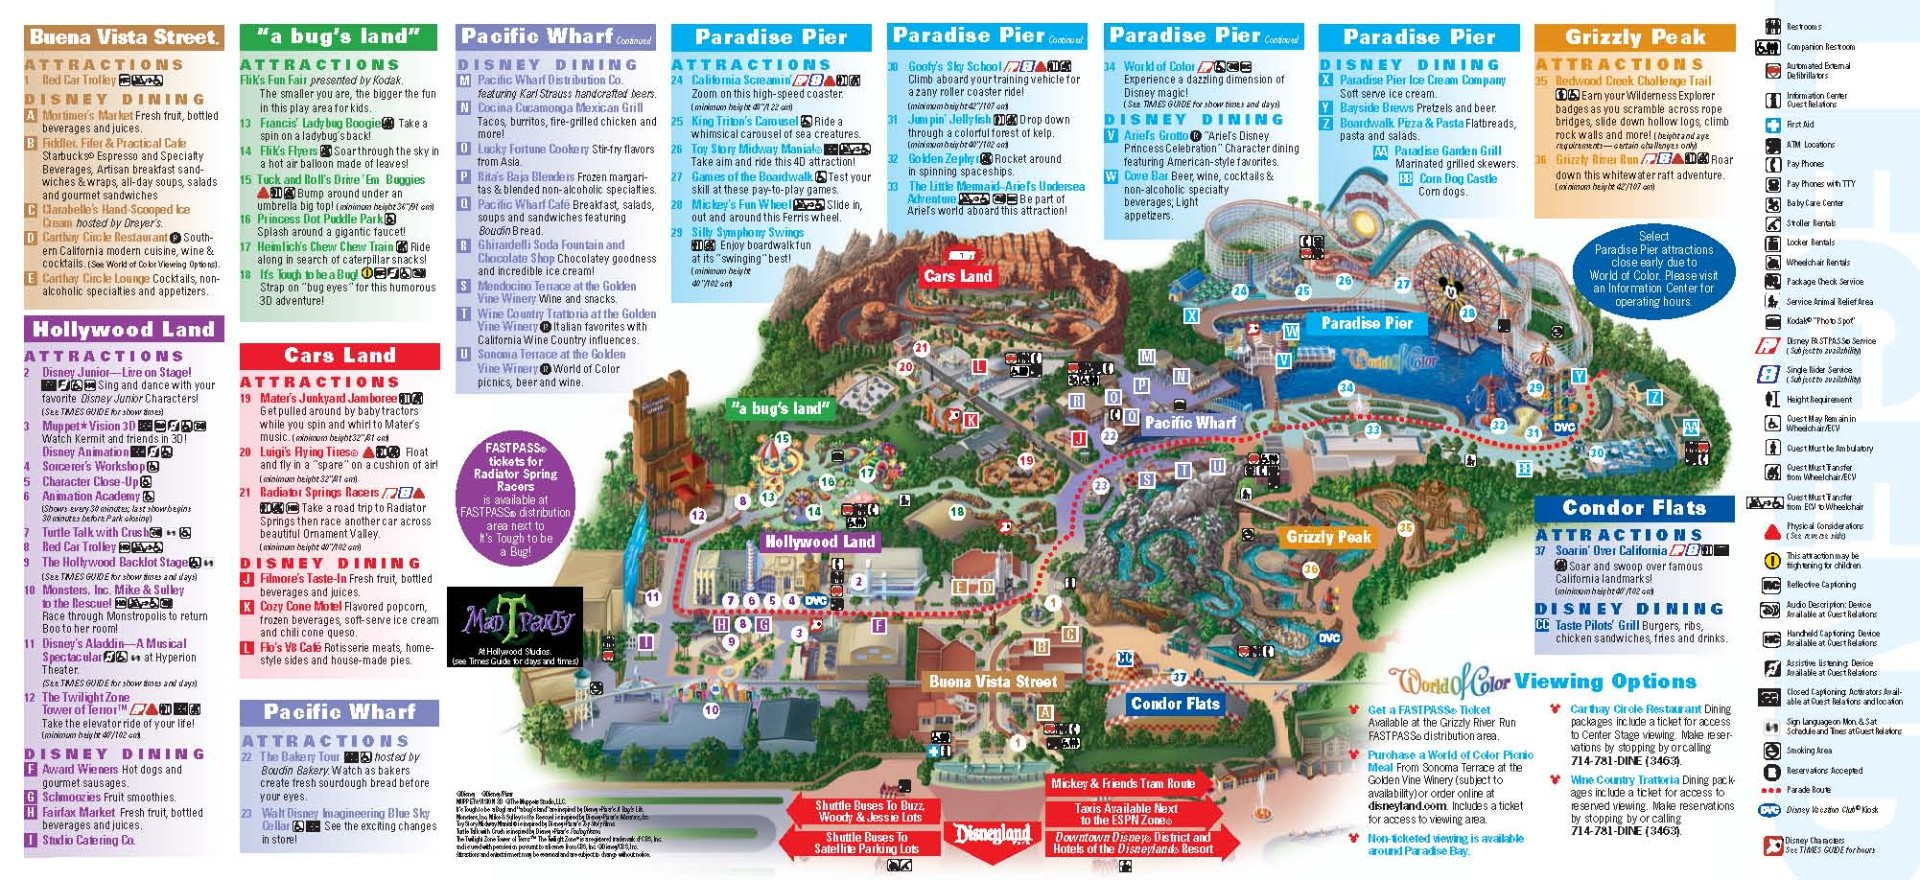 Here is a picture of the park map, which shows each specific attraction, landmark, and also includes important places you may need to visit when visiting the park. Picture found from https://thrillz.co/themeparks/item/disney-california-adventure